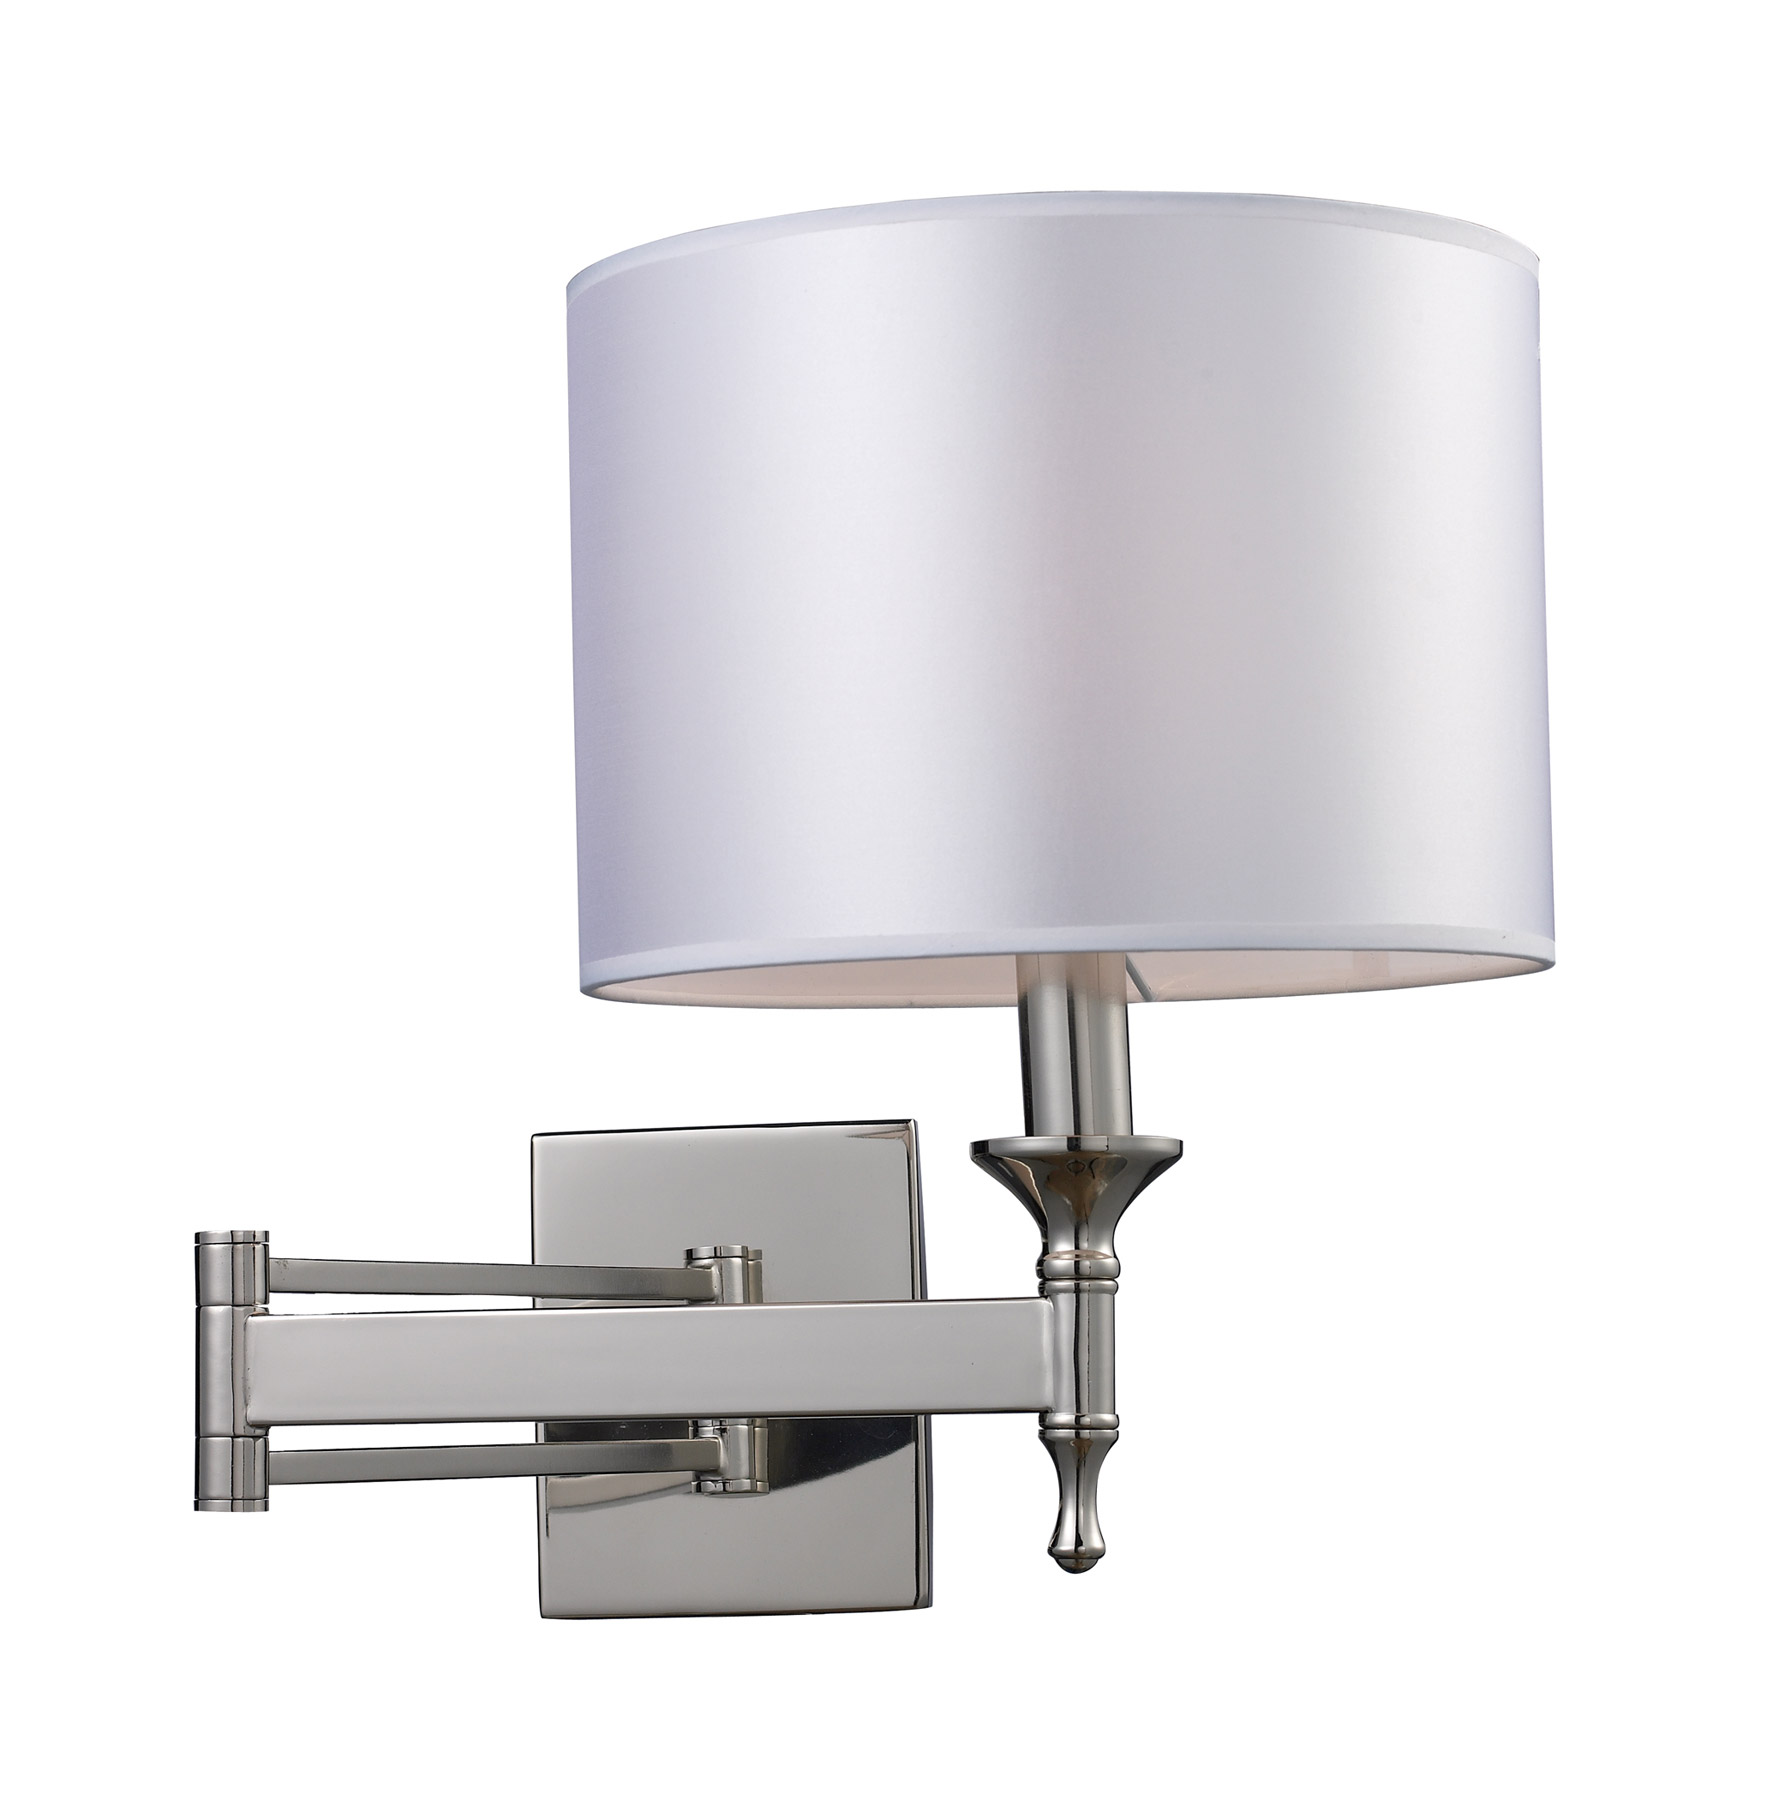 Elk Lighting 10160/1 Pembroke Swing Arm Wall Sconce